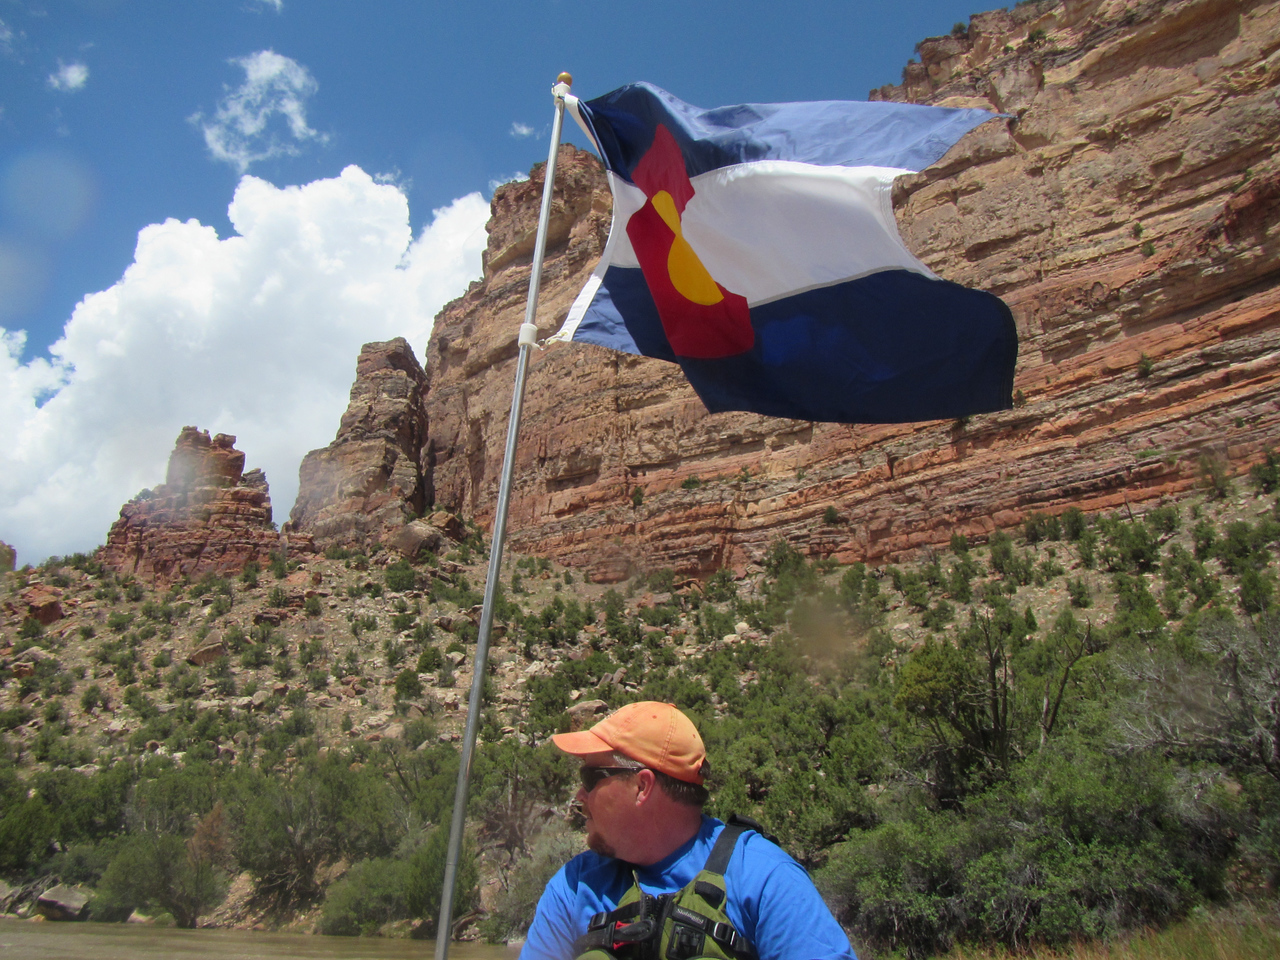 Matt with our latest flag addition - love the Colorado colors